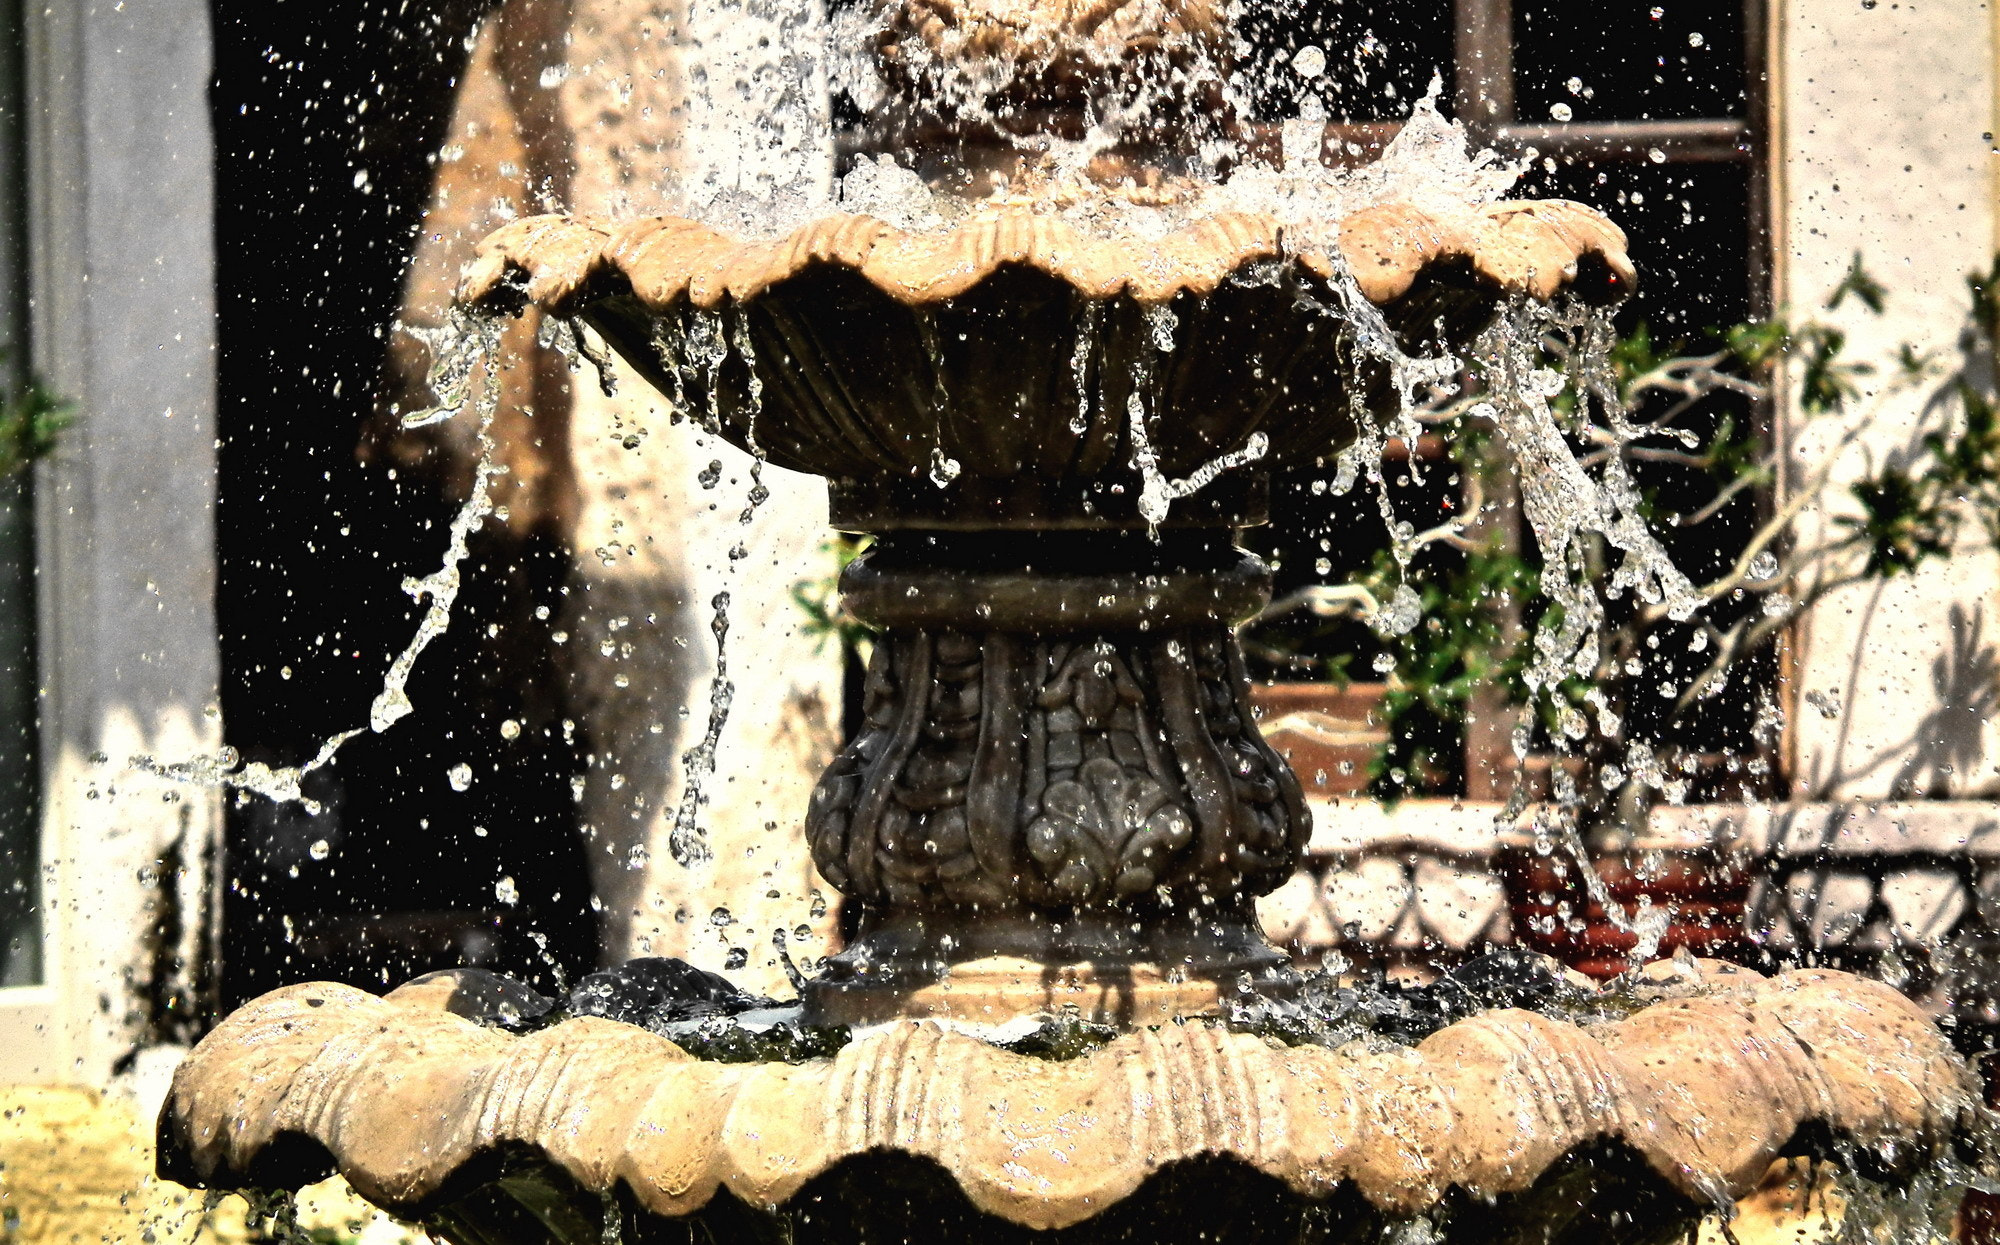 Photograph Fountain by Shishir Agrawal on 500px